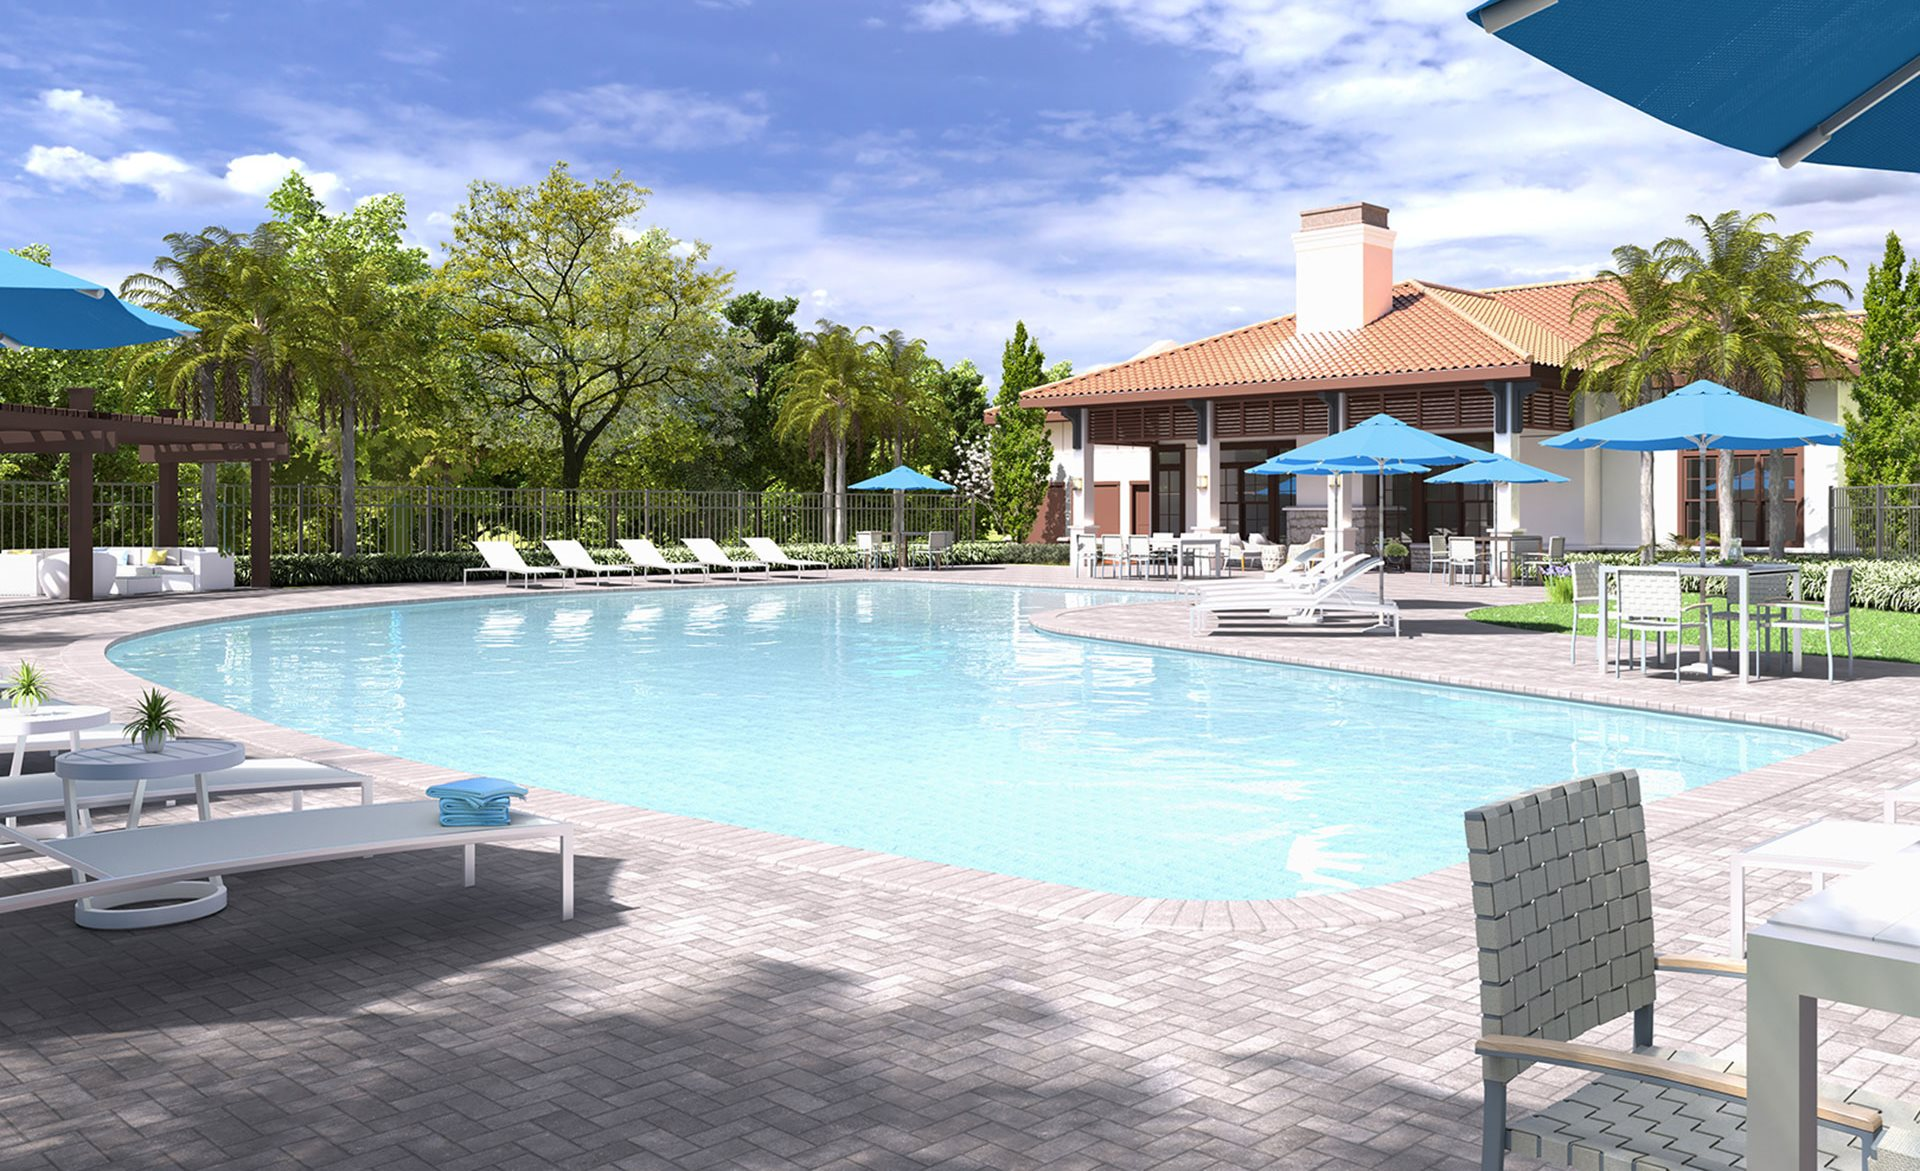 Lounge swimming pool with Cabana at Ester Parc,